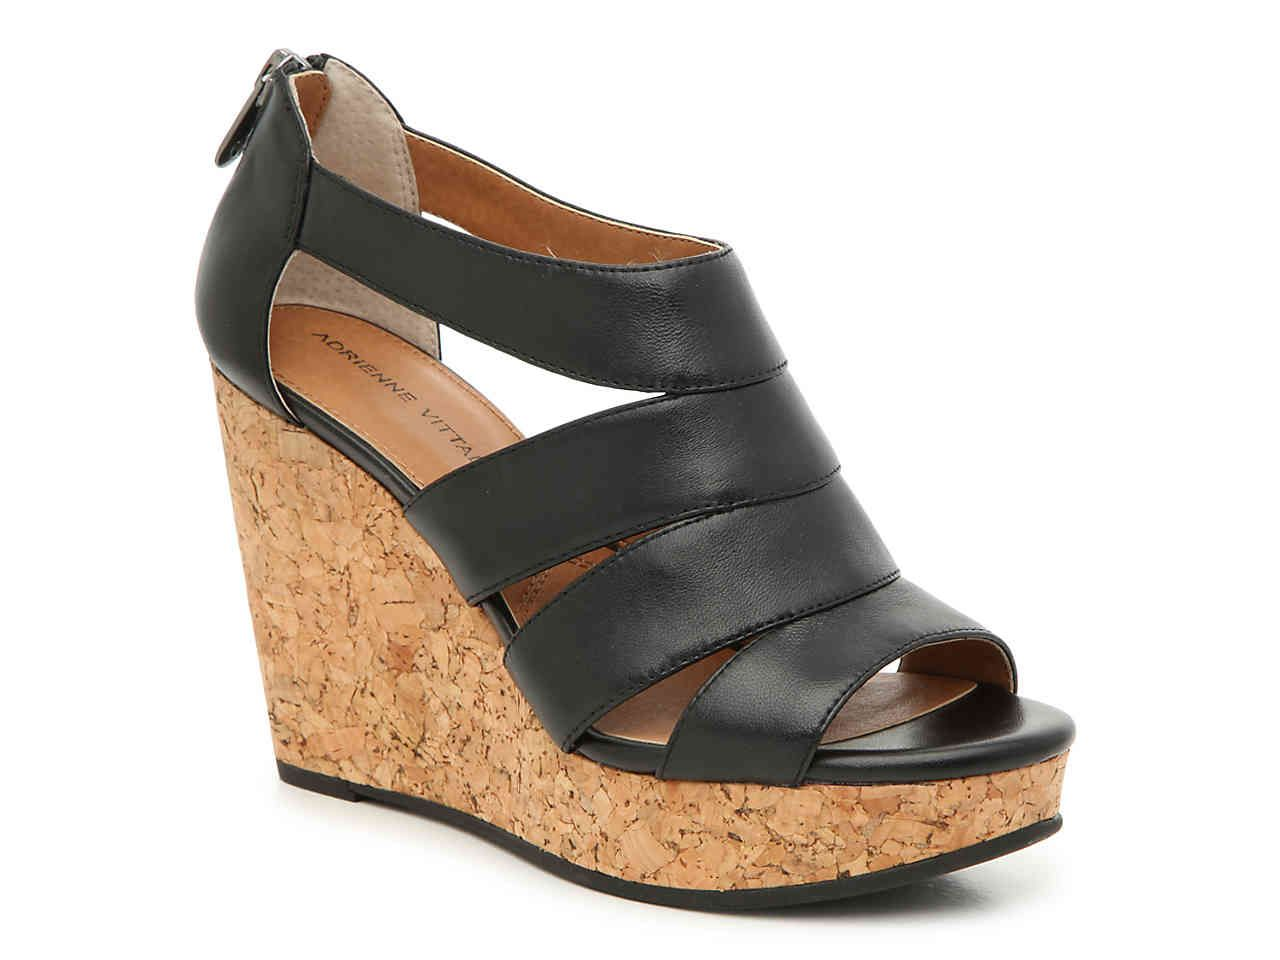 f04bc1c2a0a Adrienne Vittadini Chacka Wedge Sandal Women's Shoes | DSW | for the ...